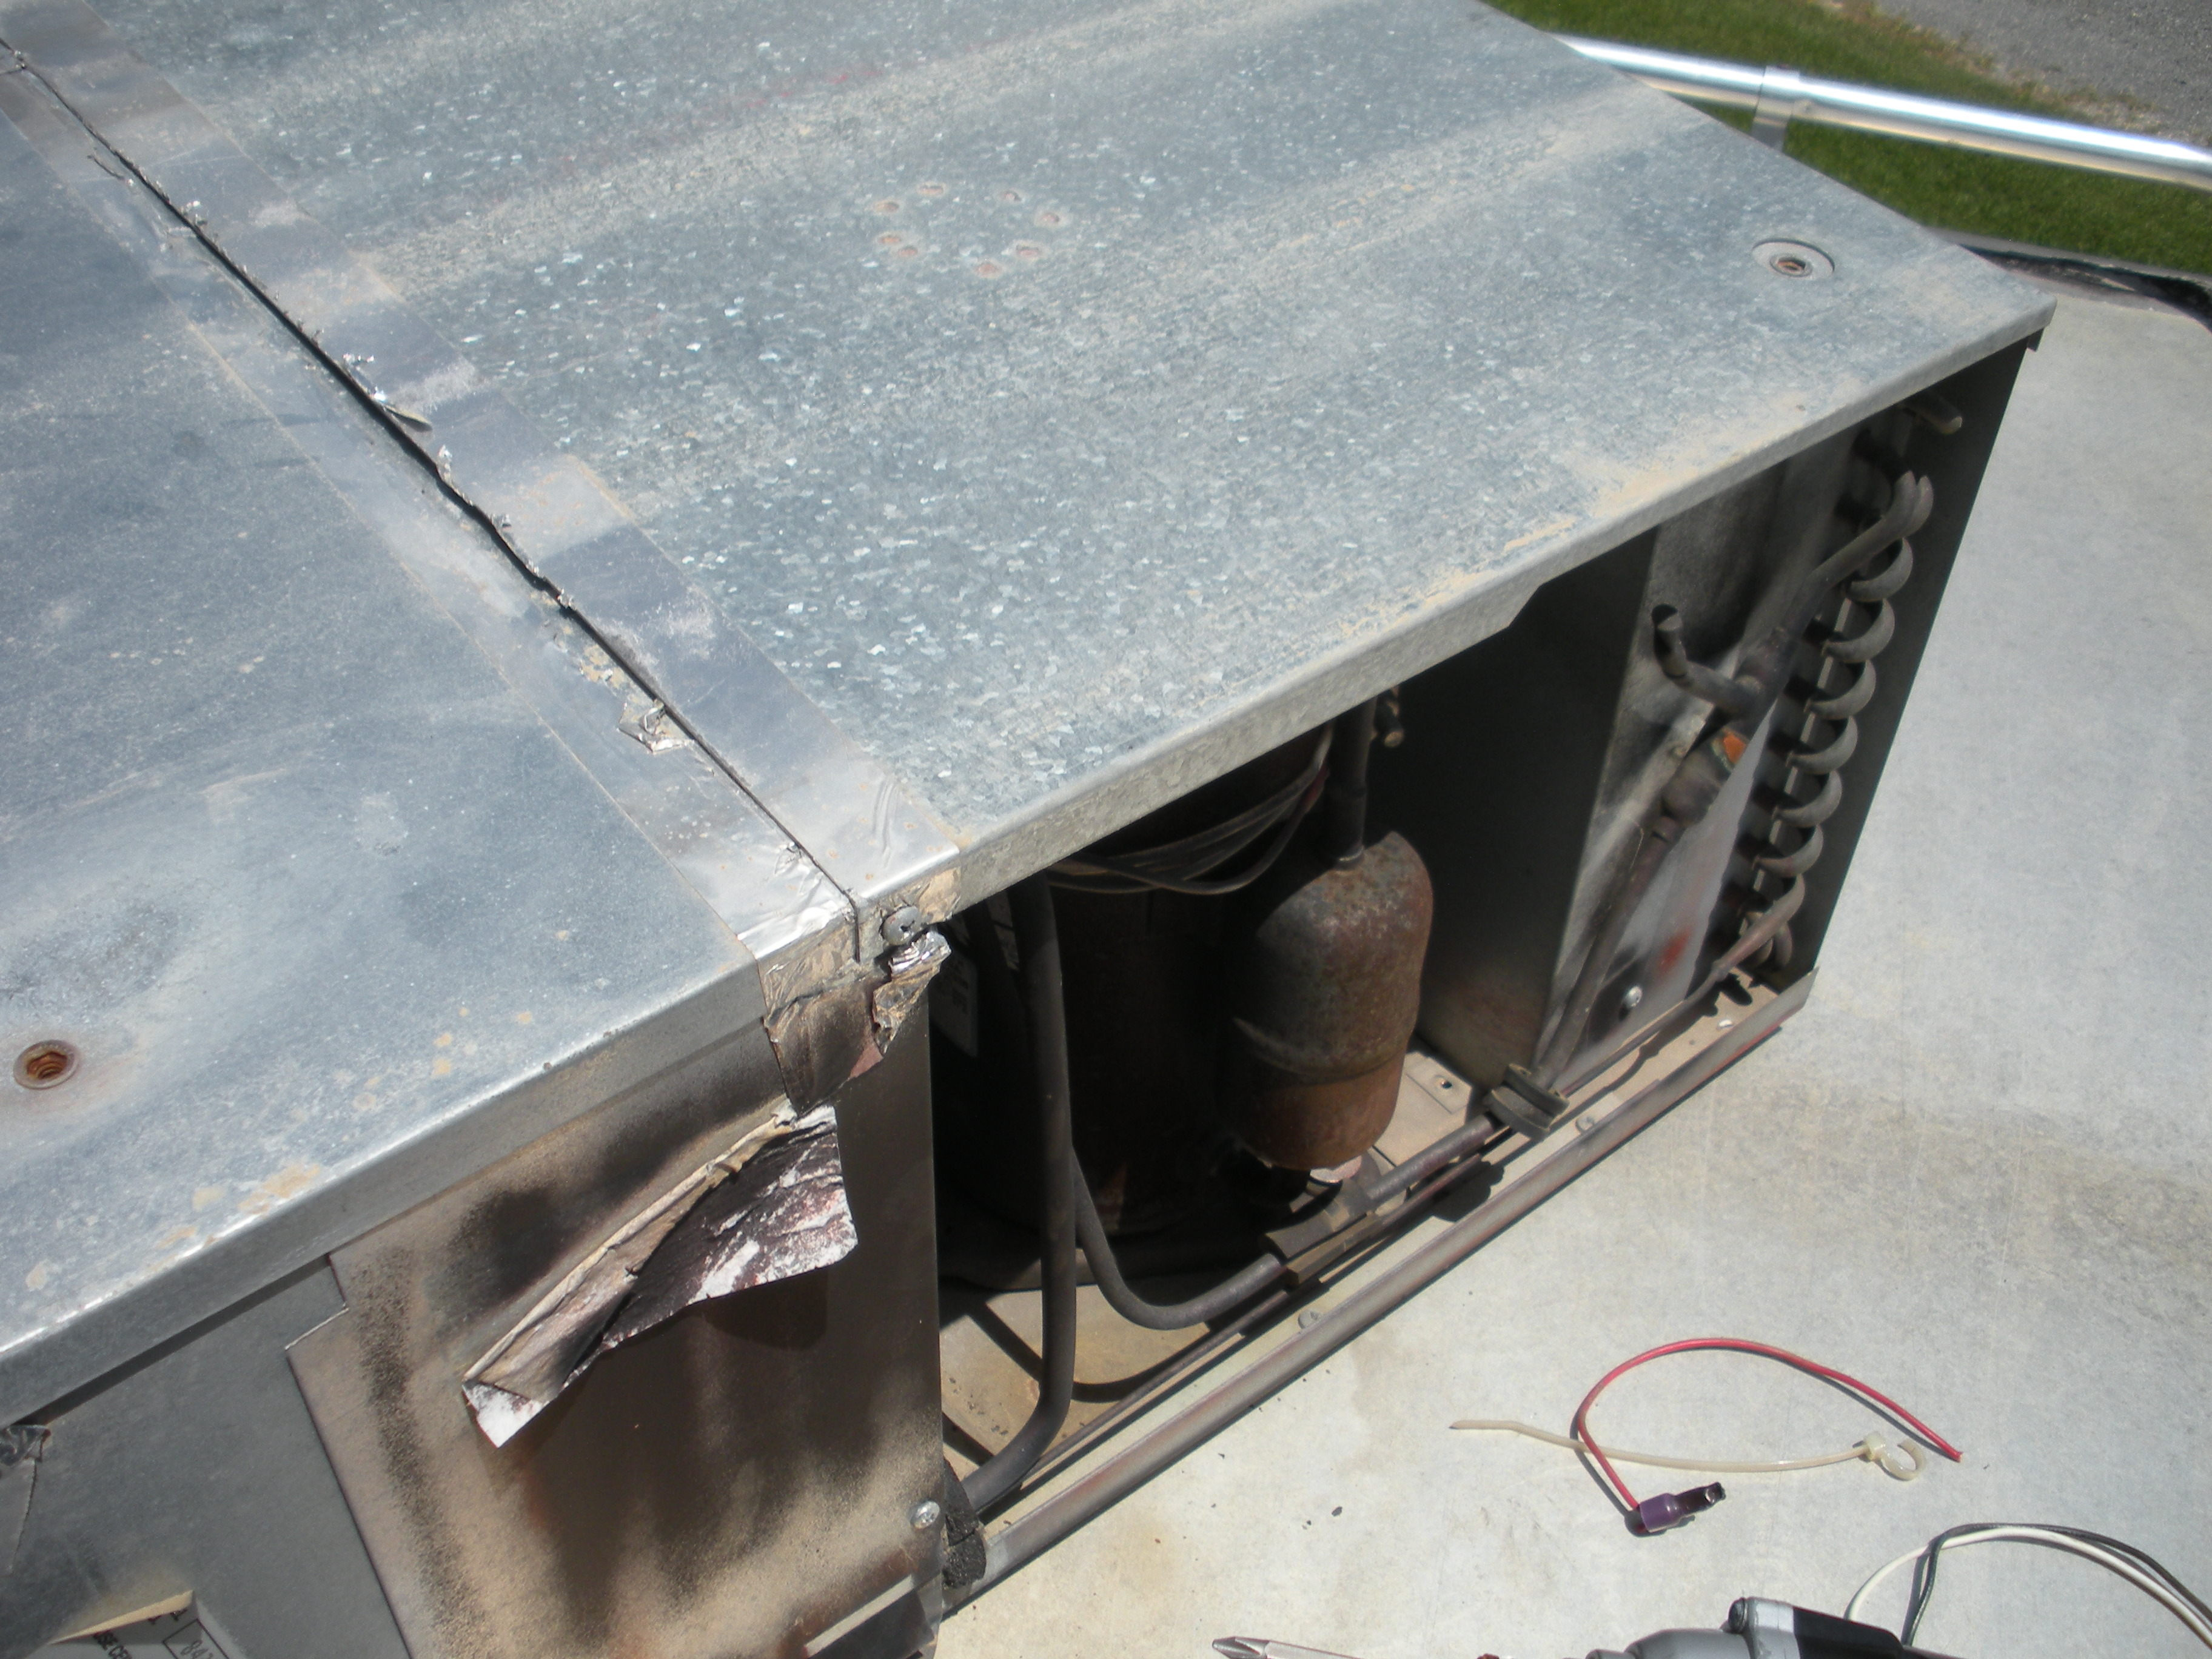 Howto Coleman Mach Rvp Blower And Condenser Fan Motor Replacement Rv 3 Wiring Panel Over Compressor Electrical Access Cover Will Need To Be Removed